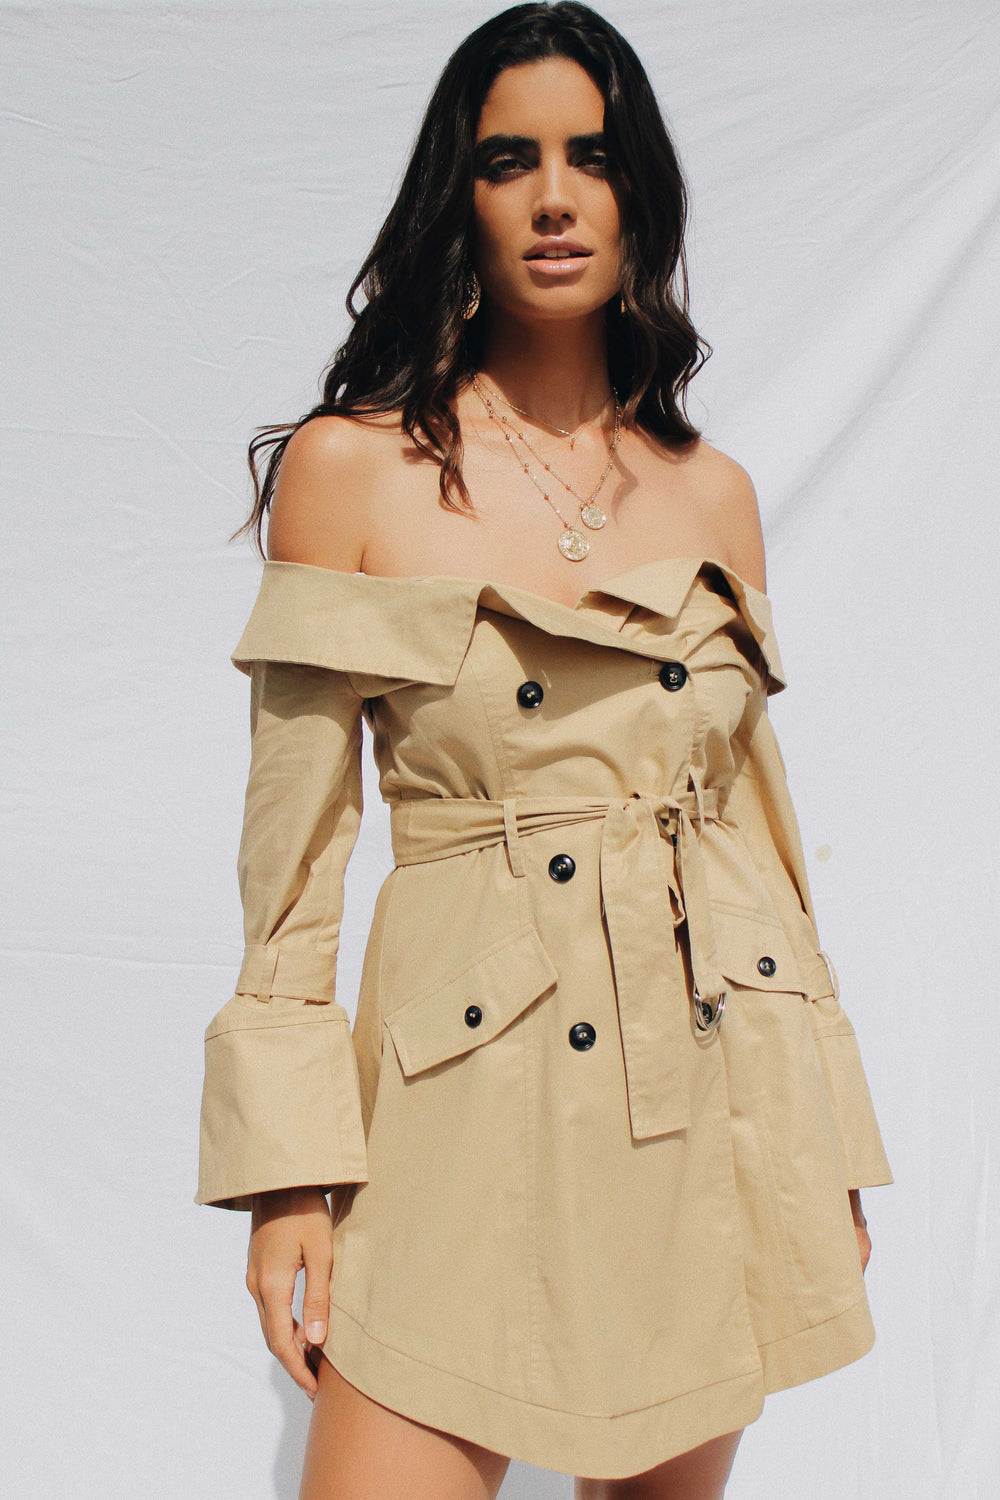 KIARA TRENCH COAT - Chic Le Frique